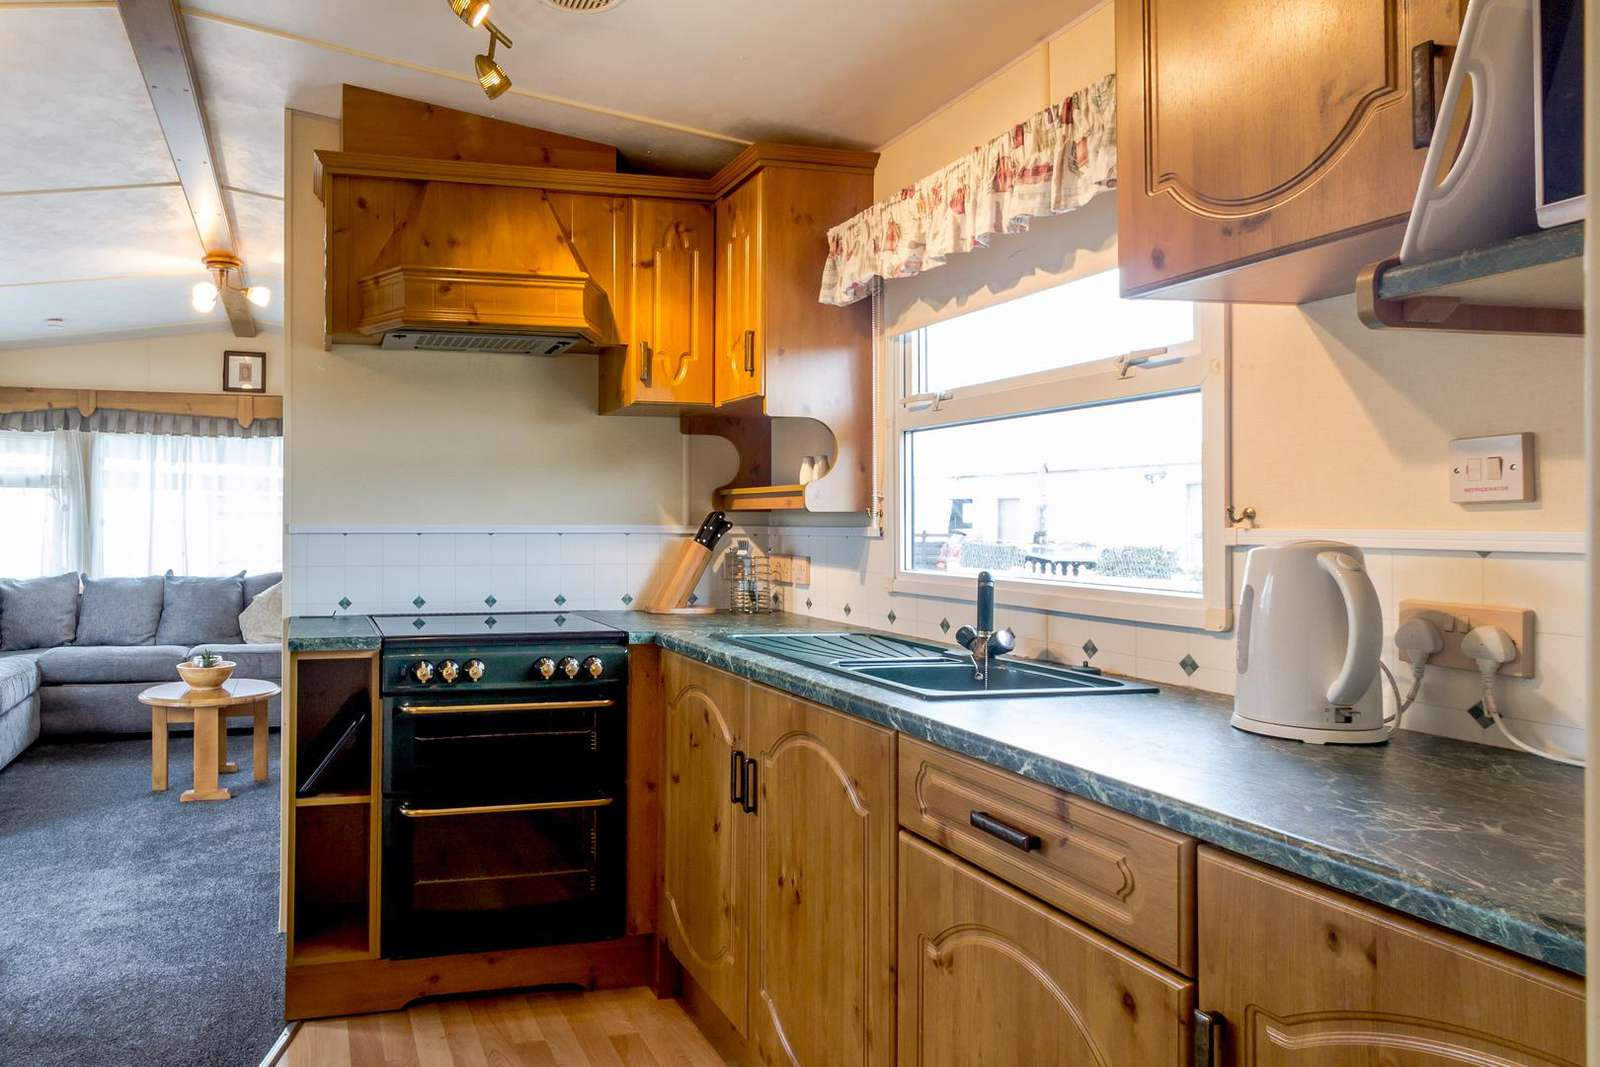 Fully equipped kitchen, perfect for self-catering breaks